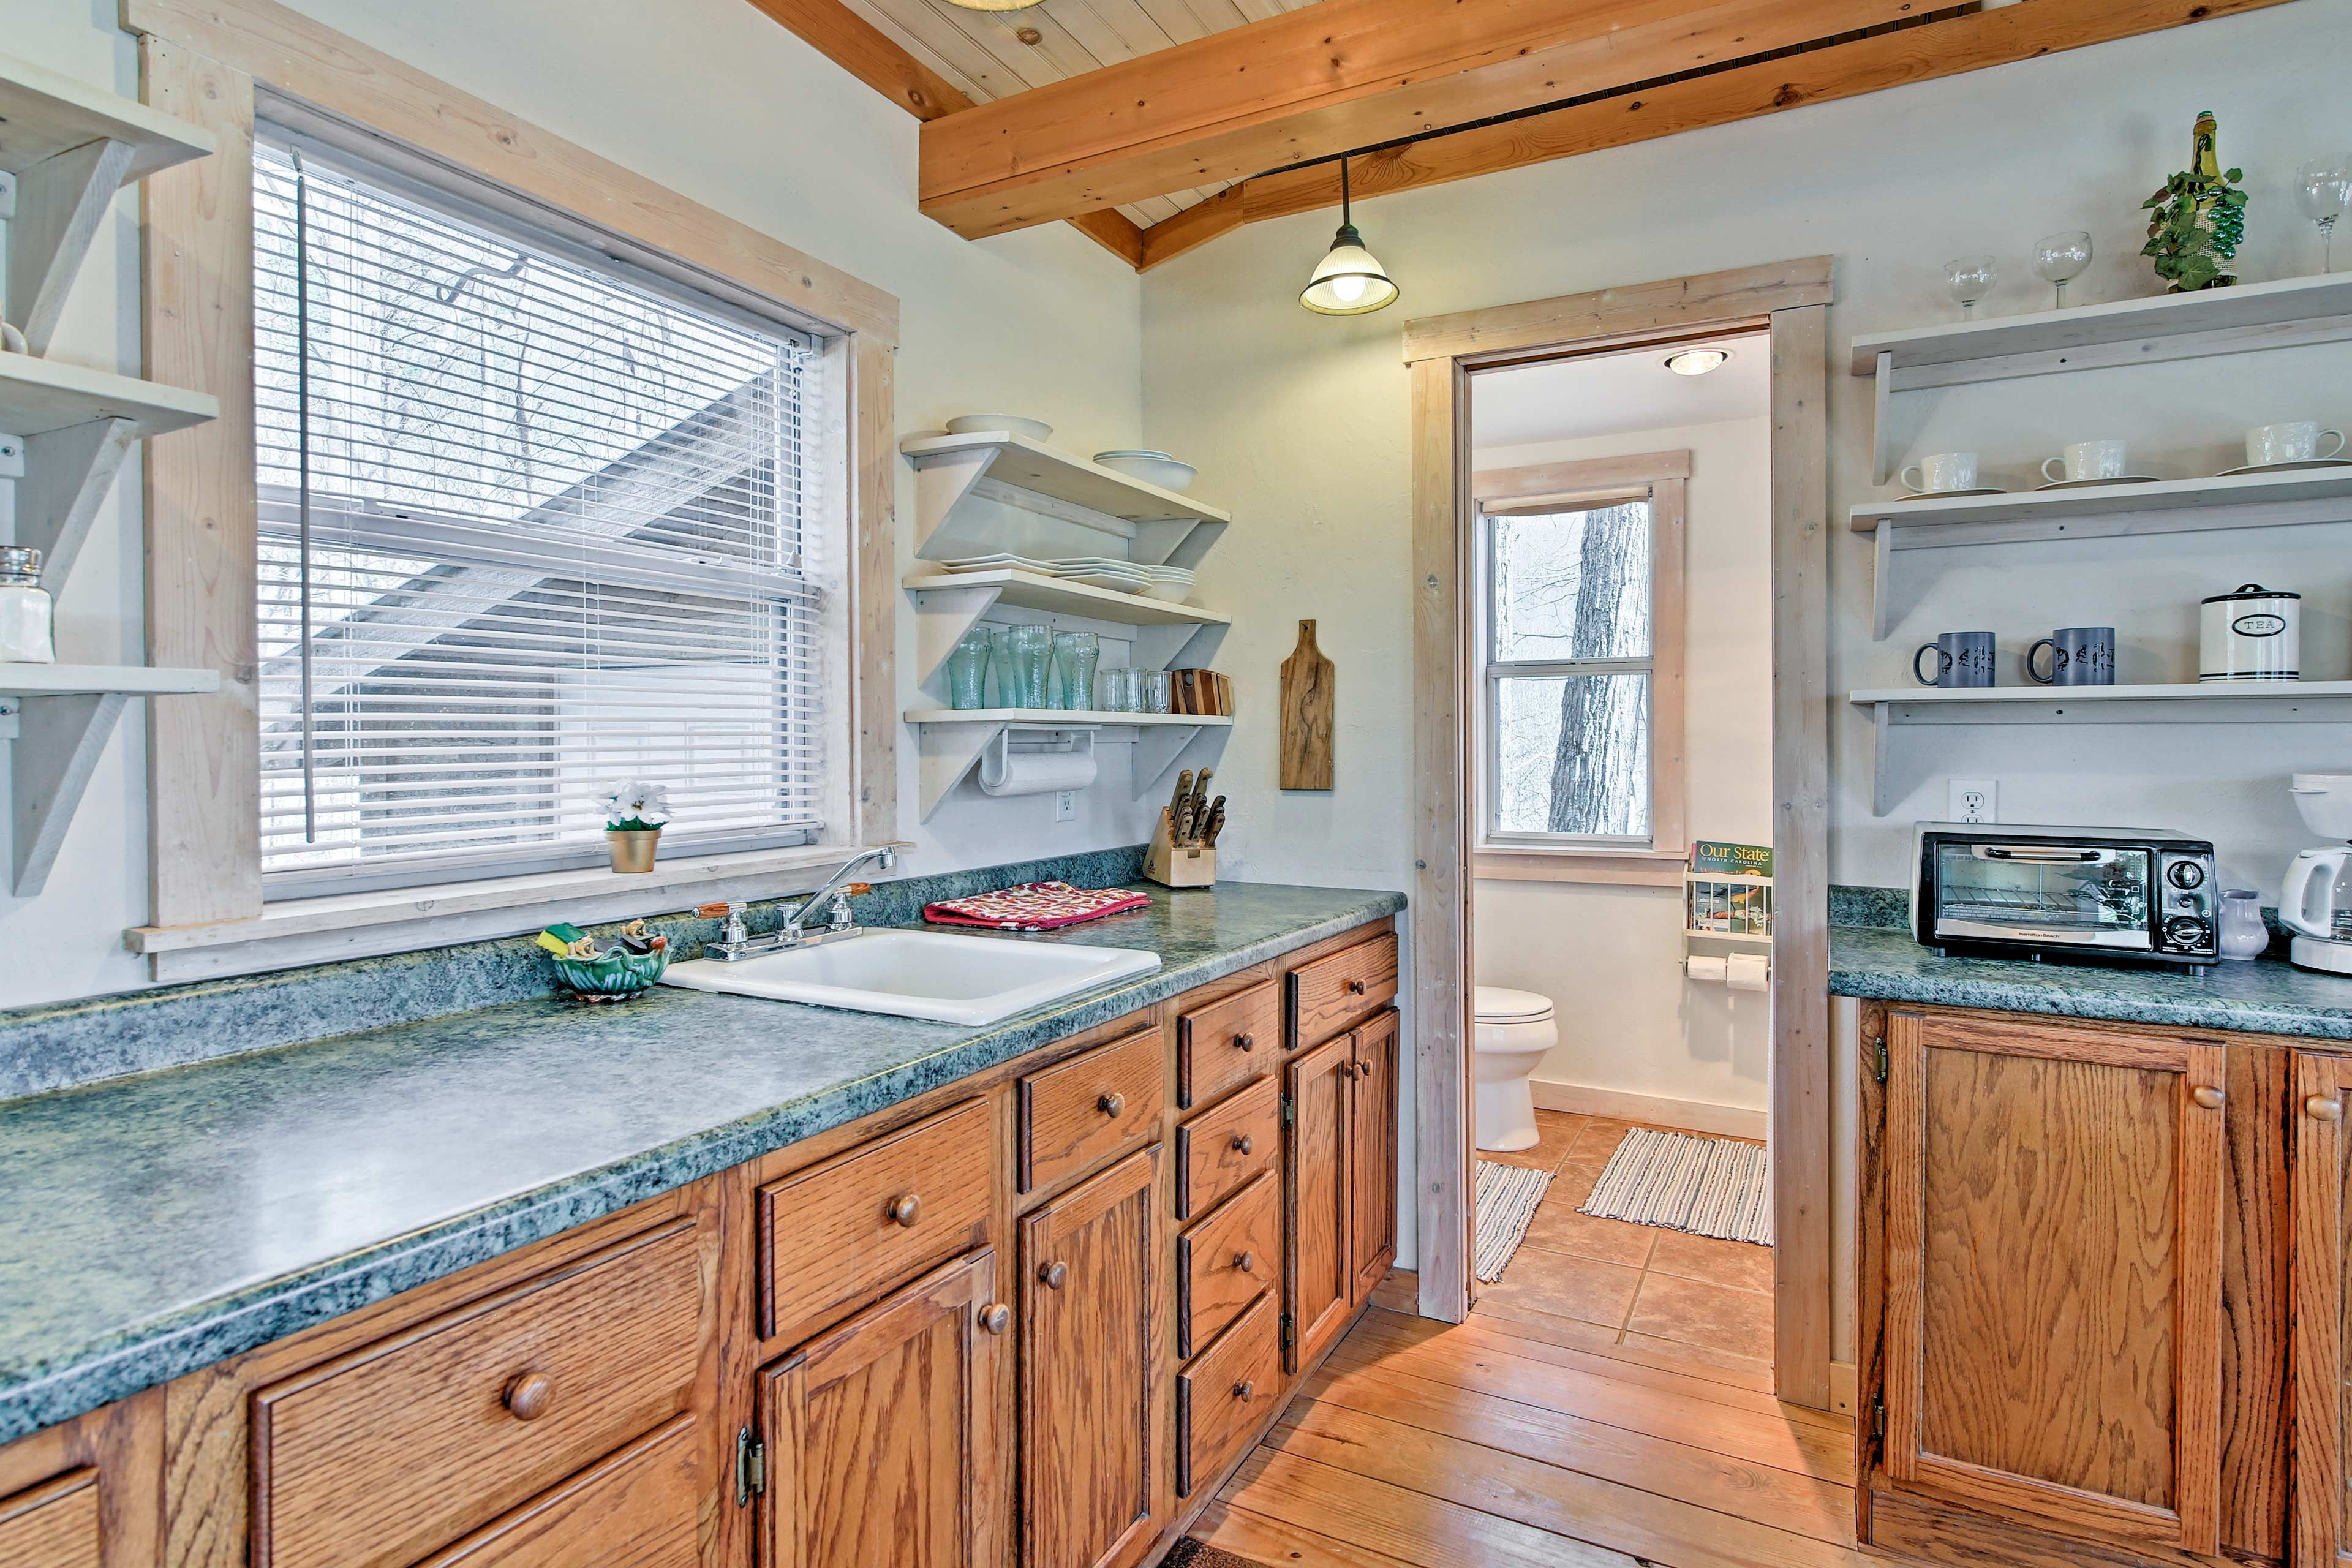 The well-equipped kitchen has everything you need to prepare a home-cooked meal.